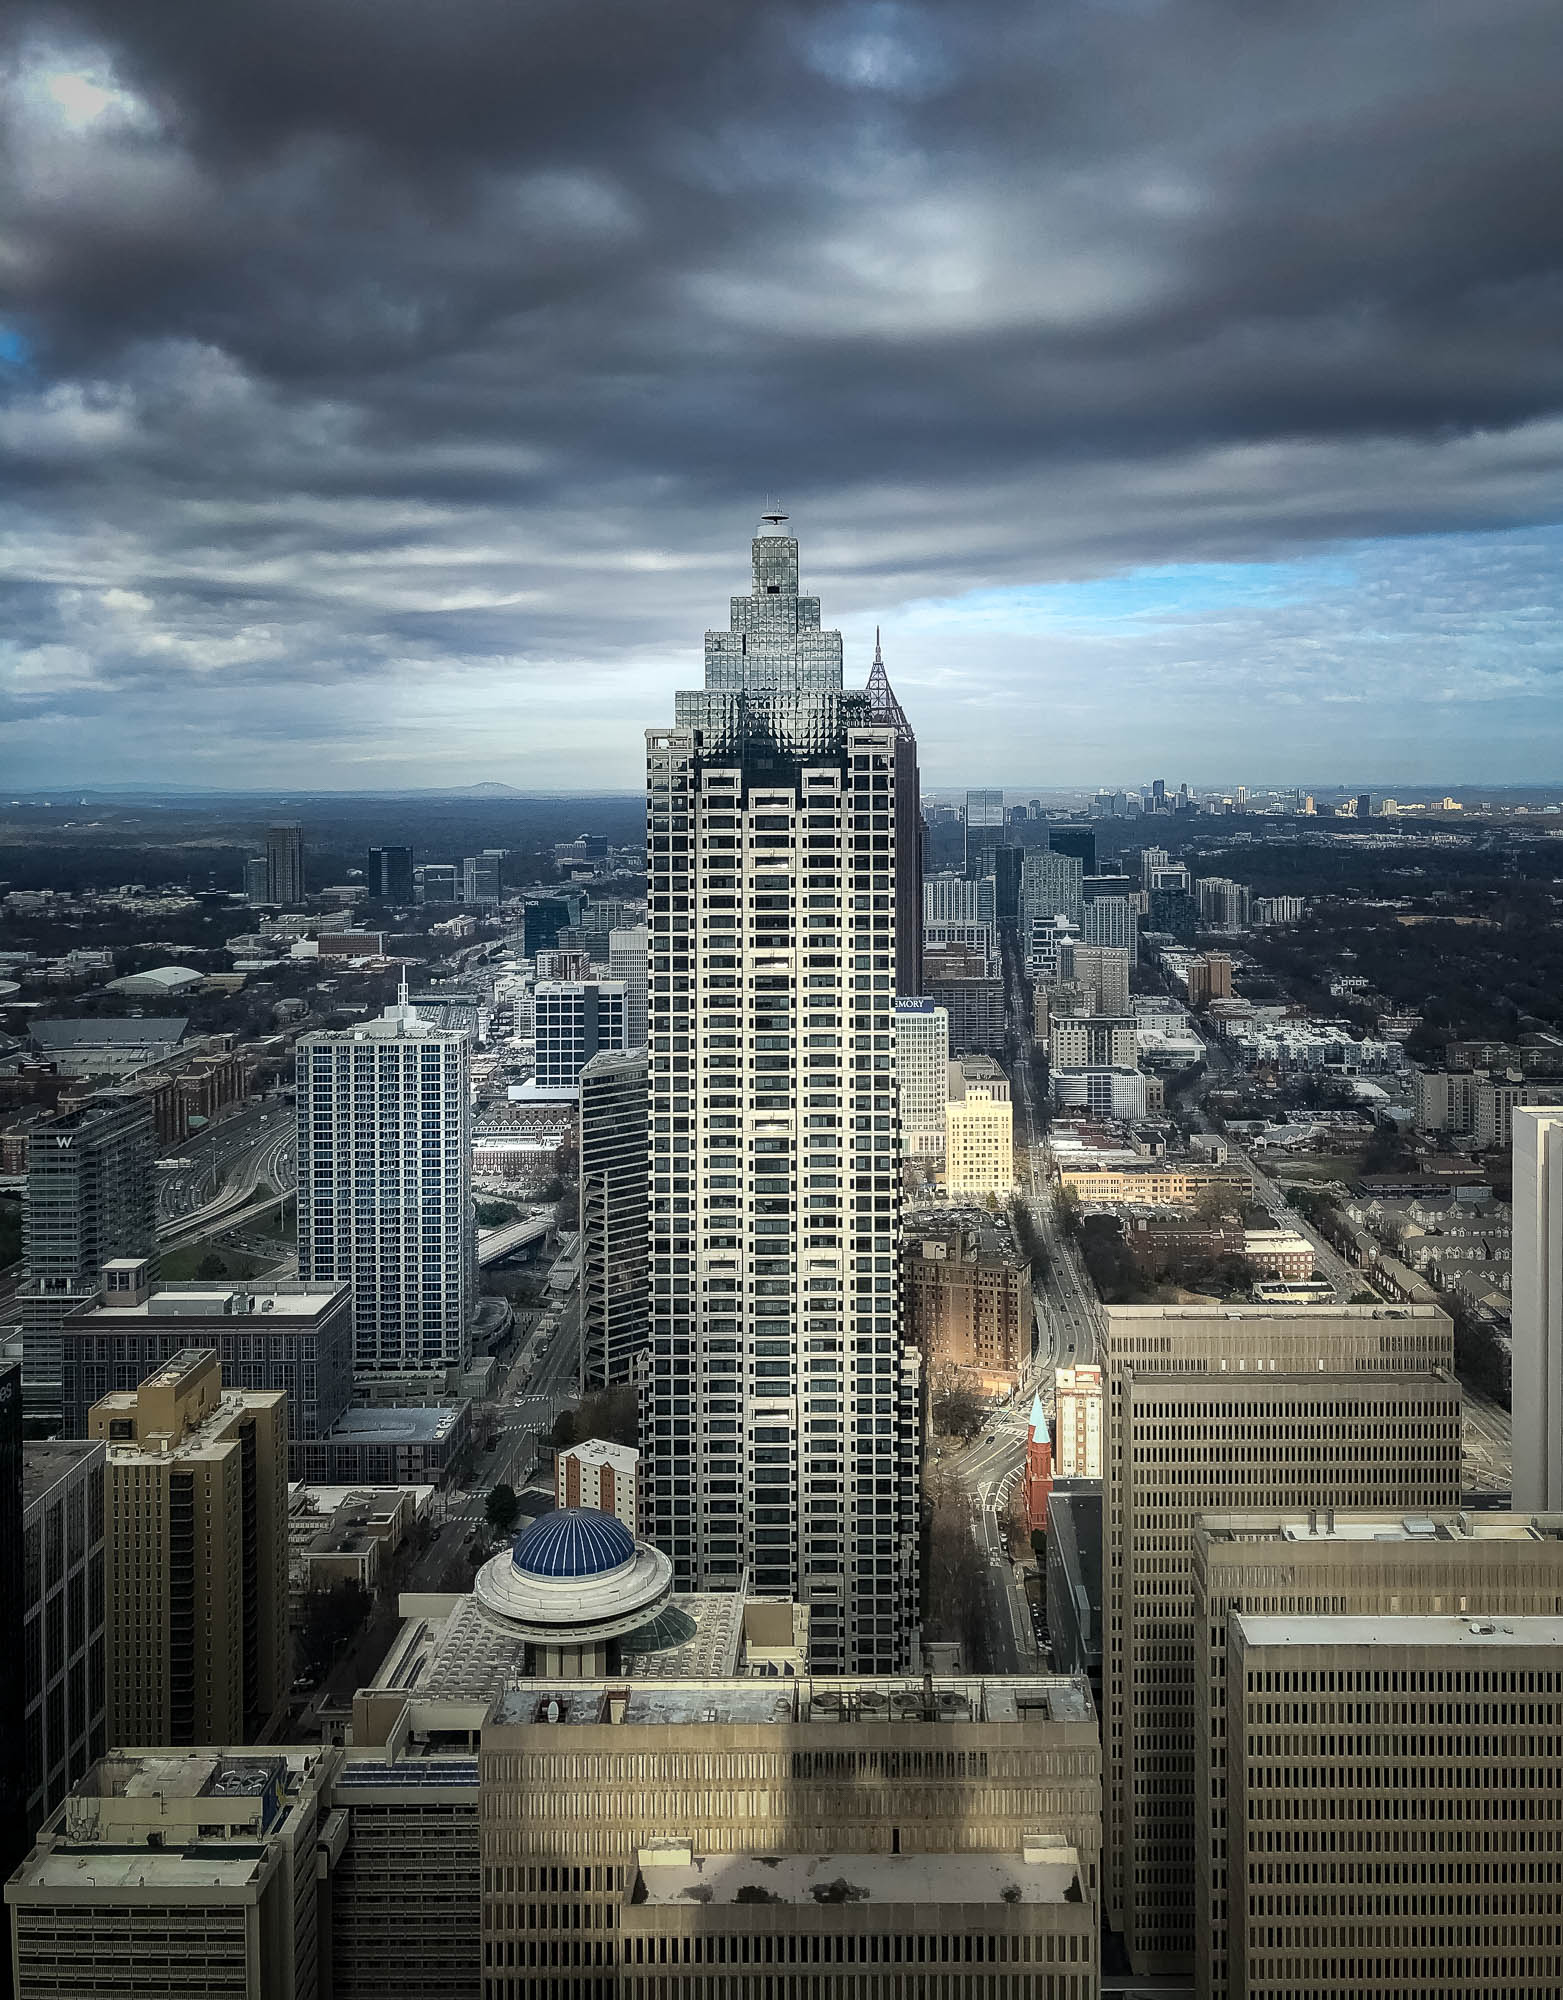 Atlanta Skyline from Drone